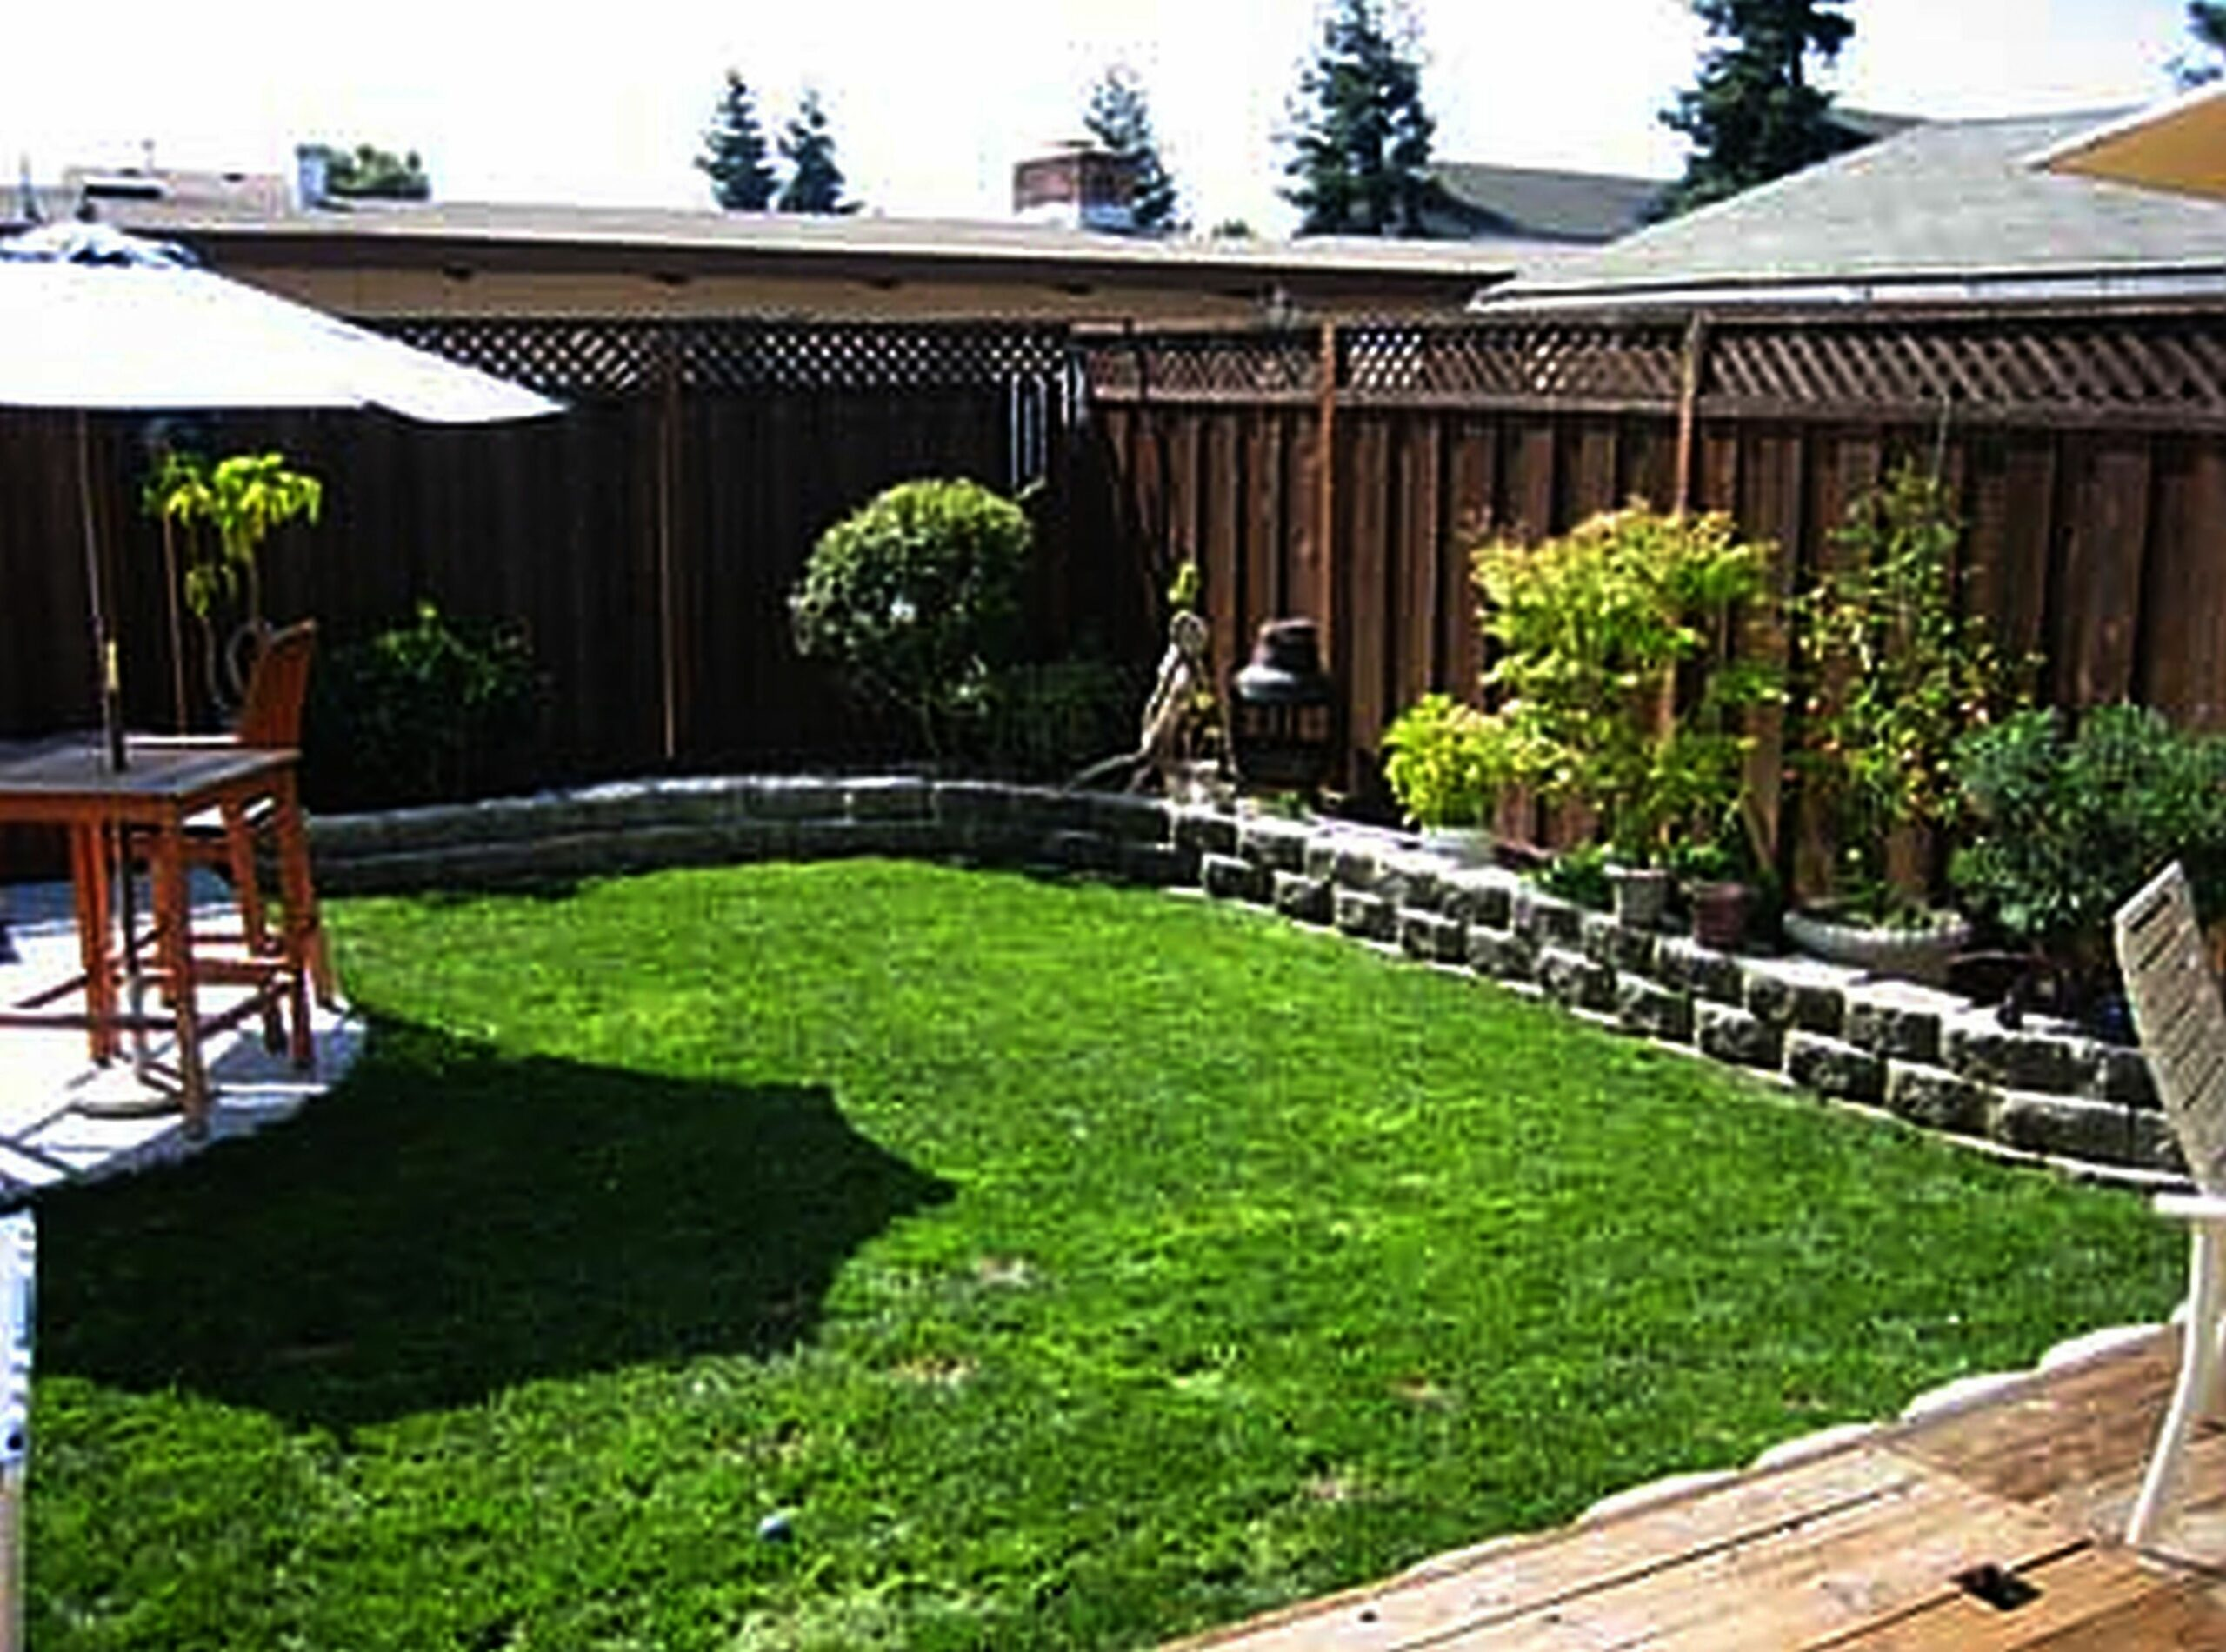 Solid Advice For Landscaping Around Your Home (With images) | Easy ...